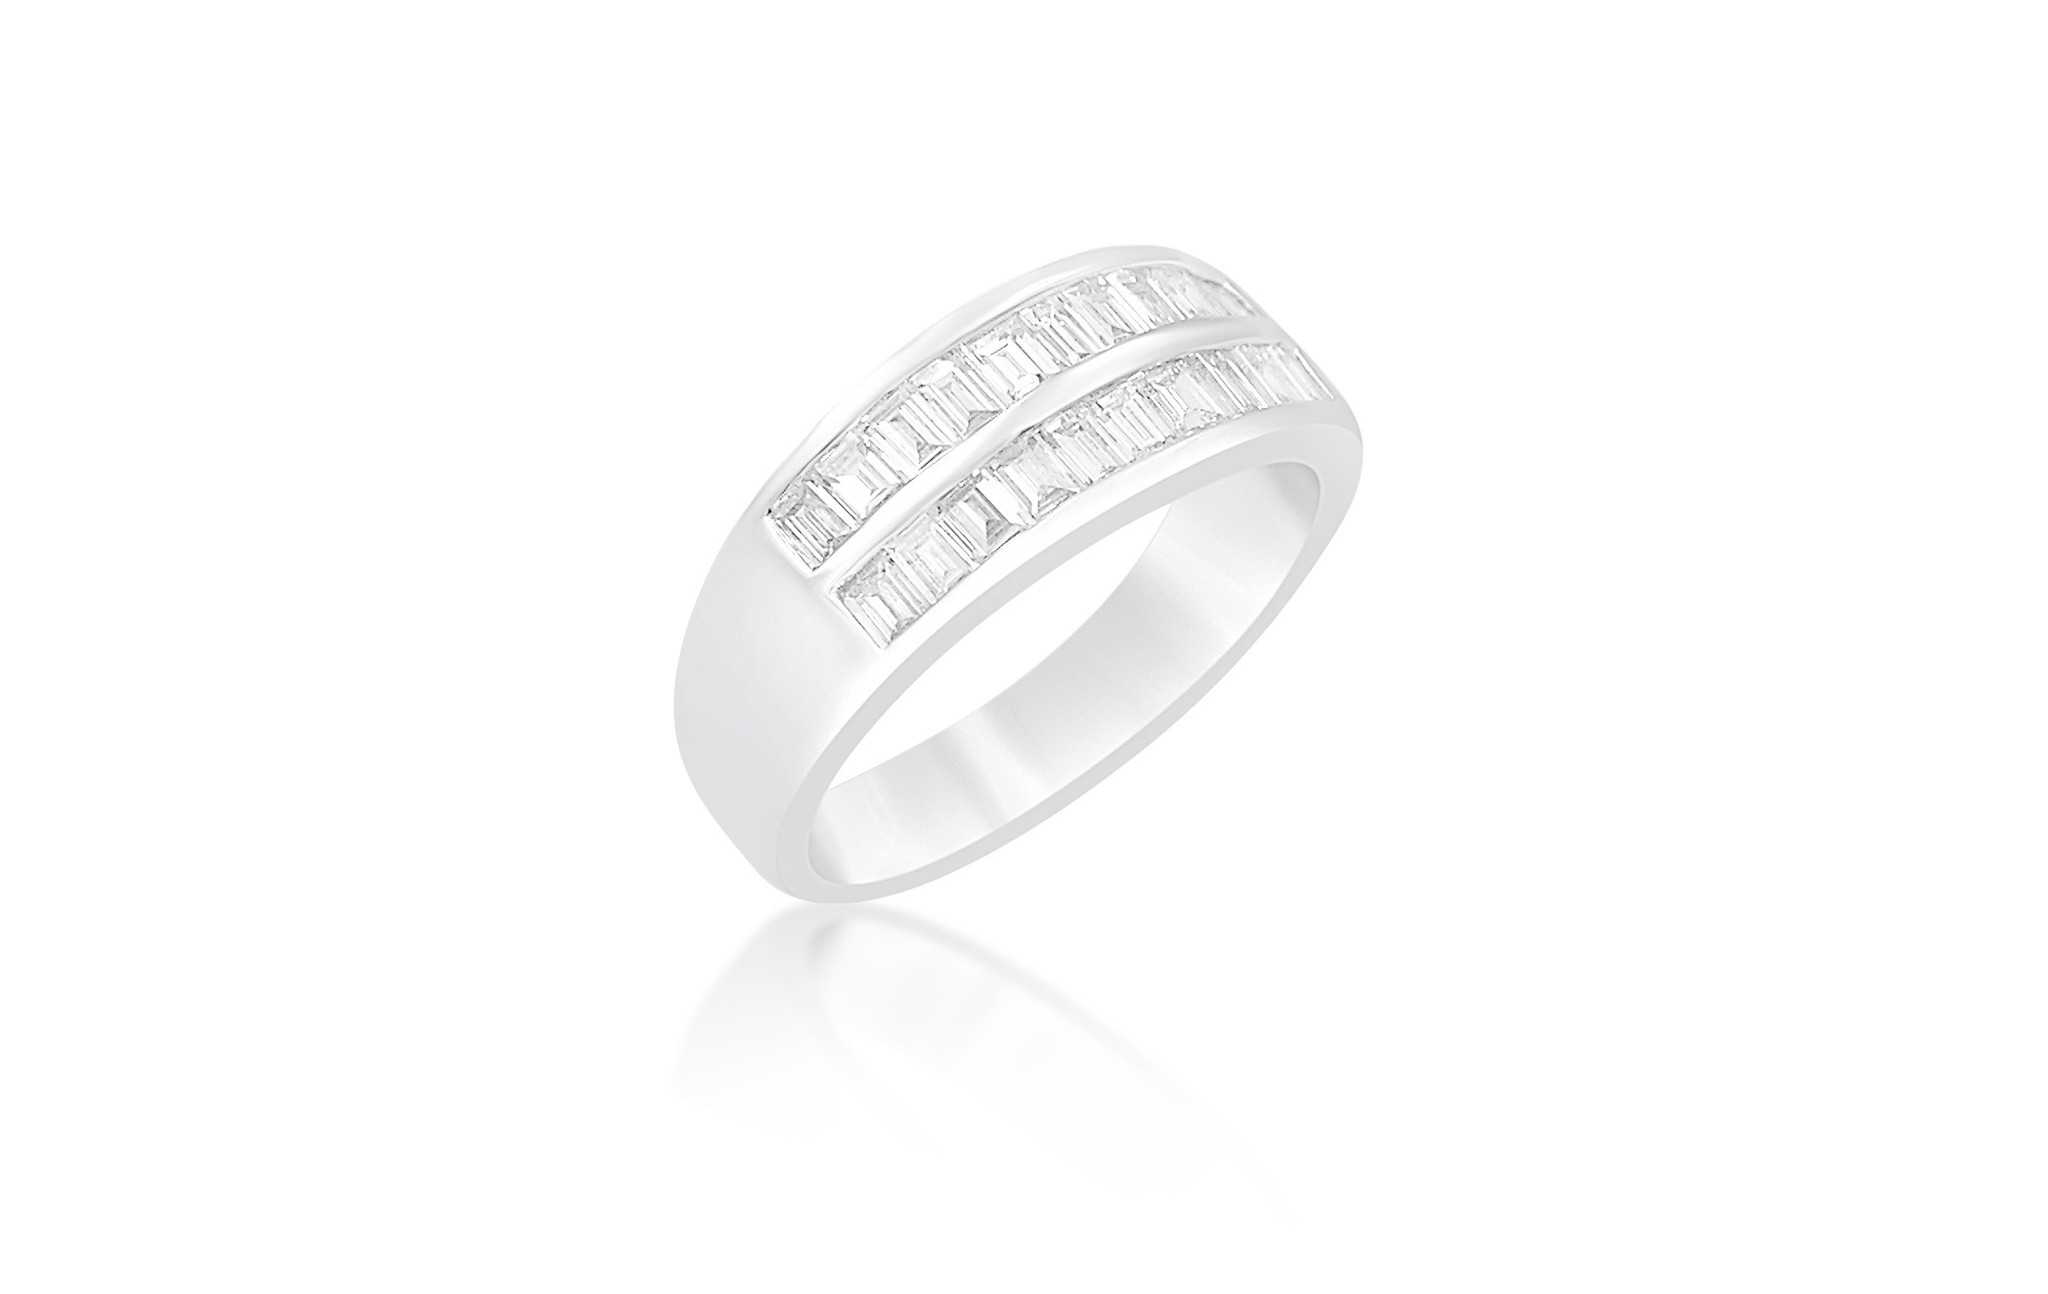 18kt white gold ring with 0.52 CT diamonds